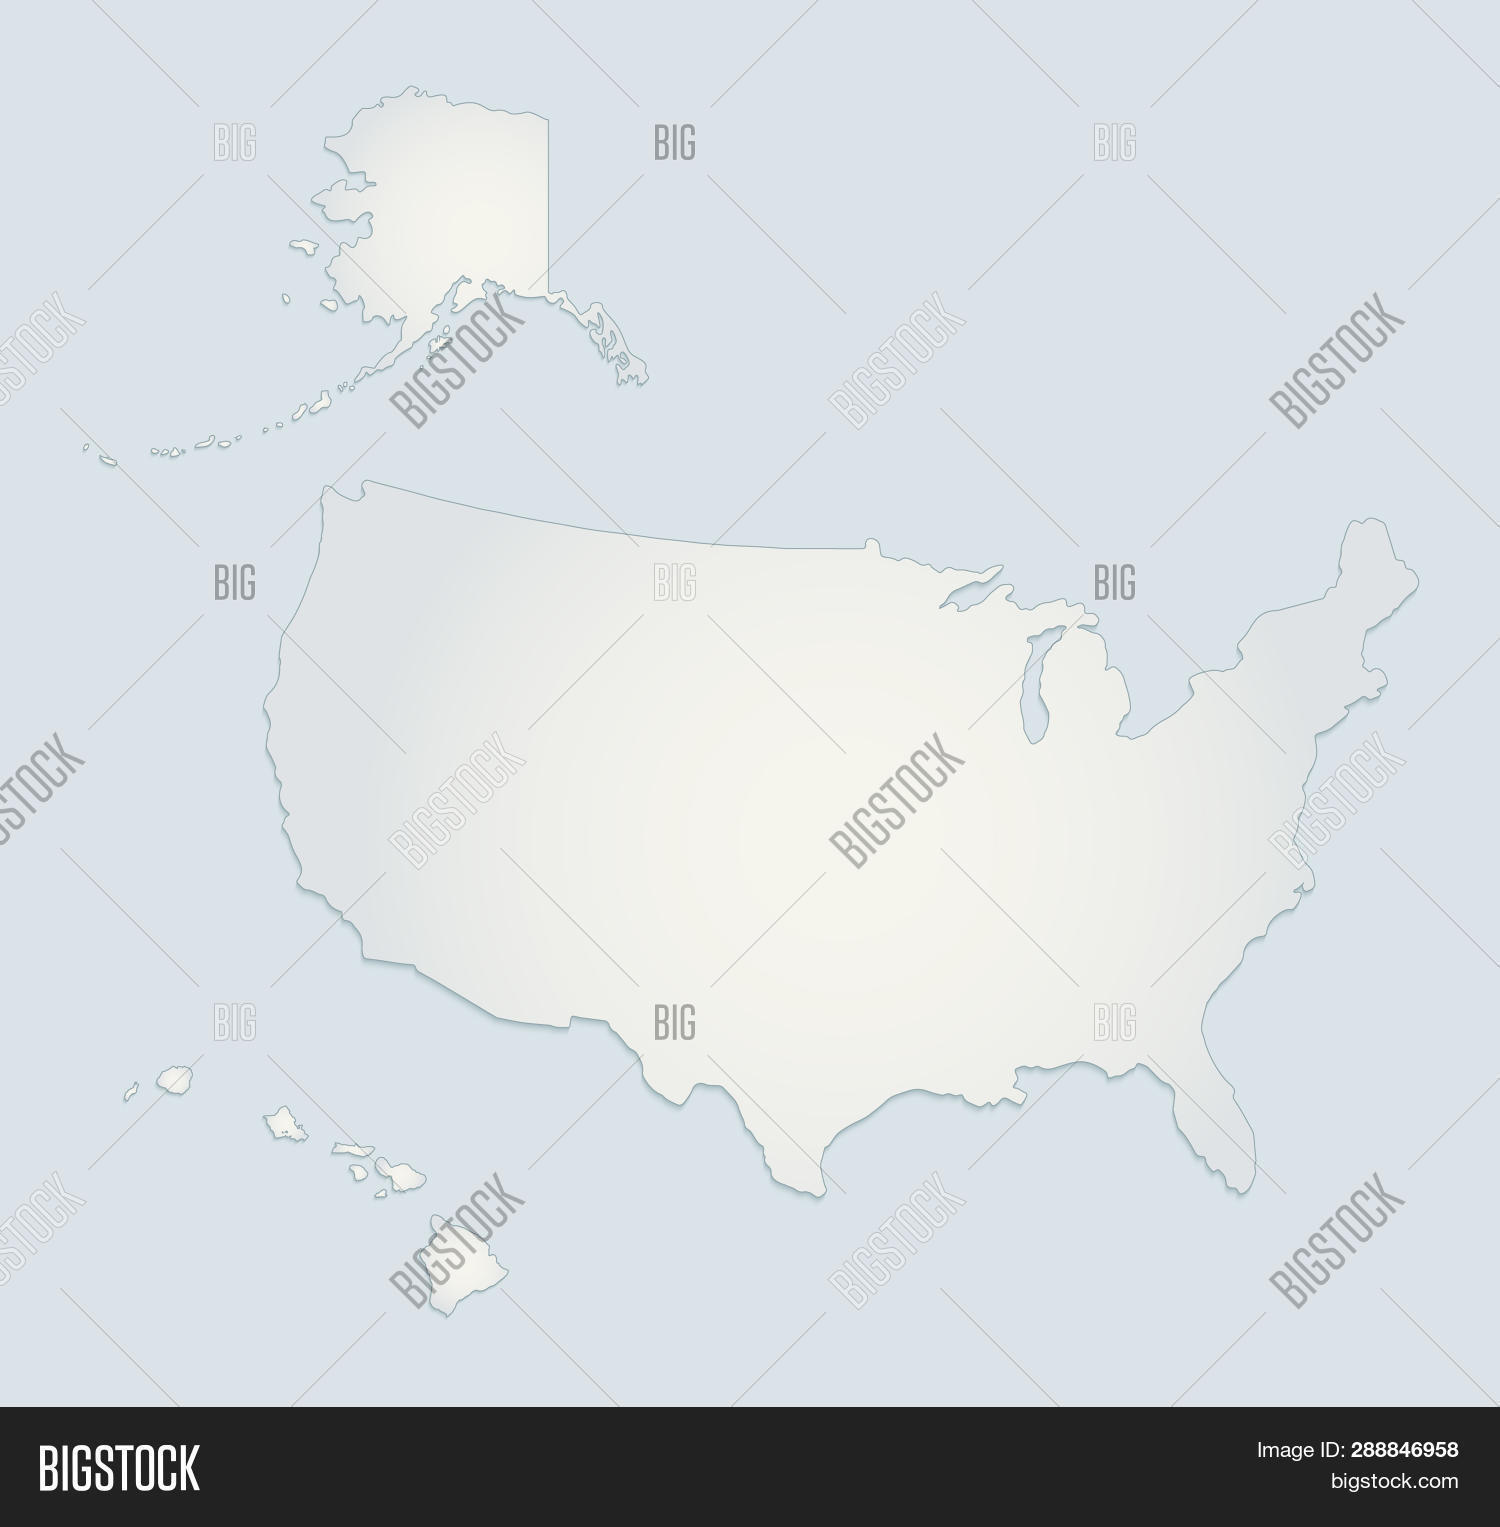 3d,abstract,alaska,america,american,art,artistic,atlas,background,blank,blue,border,cartography,clean,continent,contour,country,detailed,earth,geography,global,graphic,hawaii,hawaiian,illustration,image,island,light,map,mapped,new,outline,plastic,poster,printing,raster,shadow,shape,silhouette,state,symbol,template,travel,u.s.,united,usa,wall,wallpaper,white,world